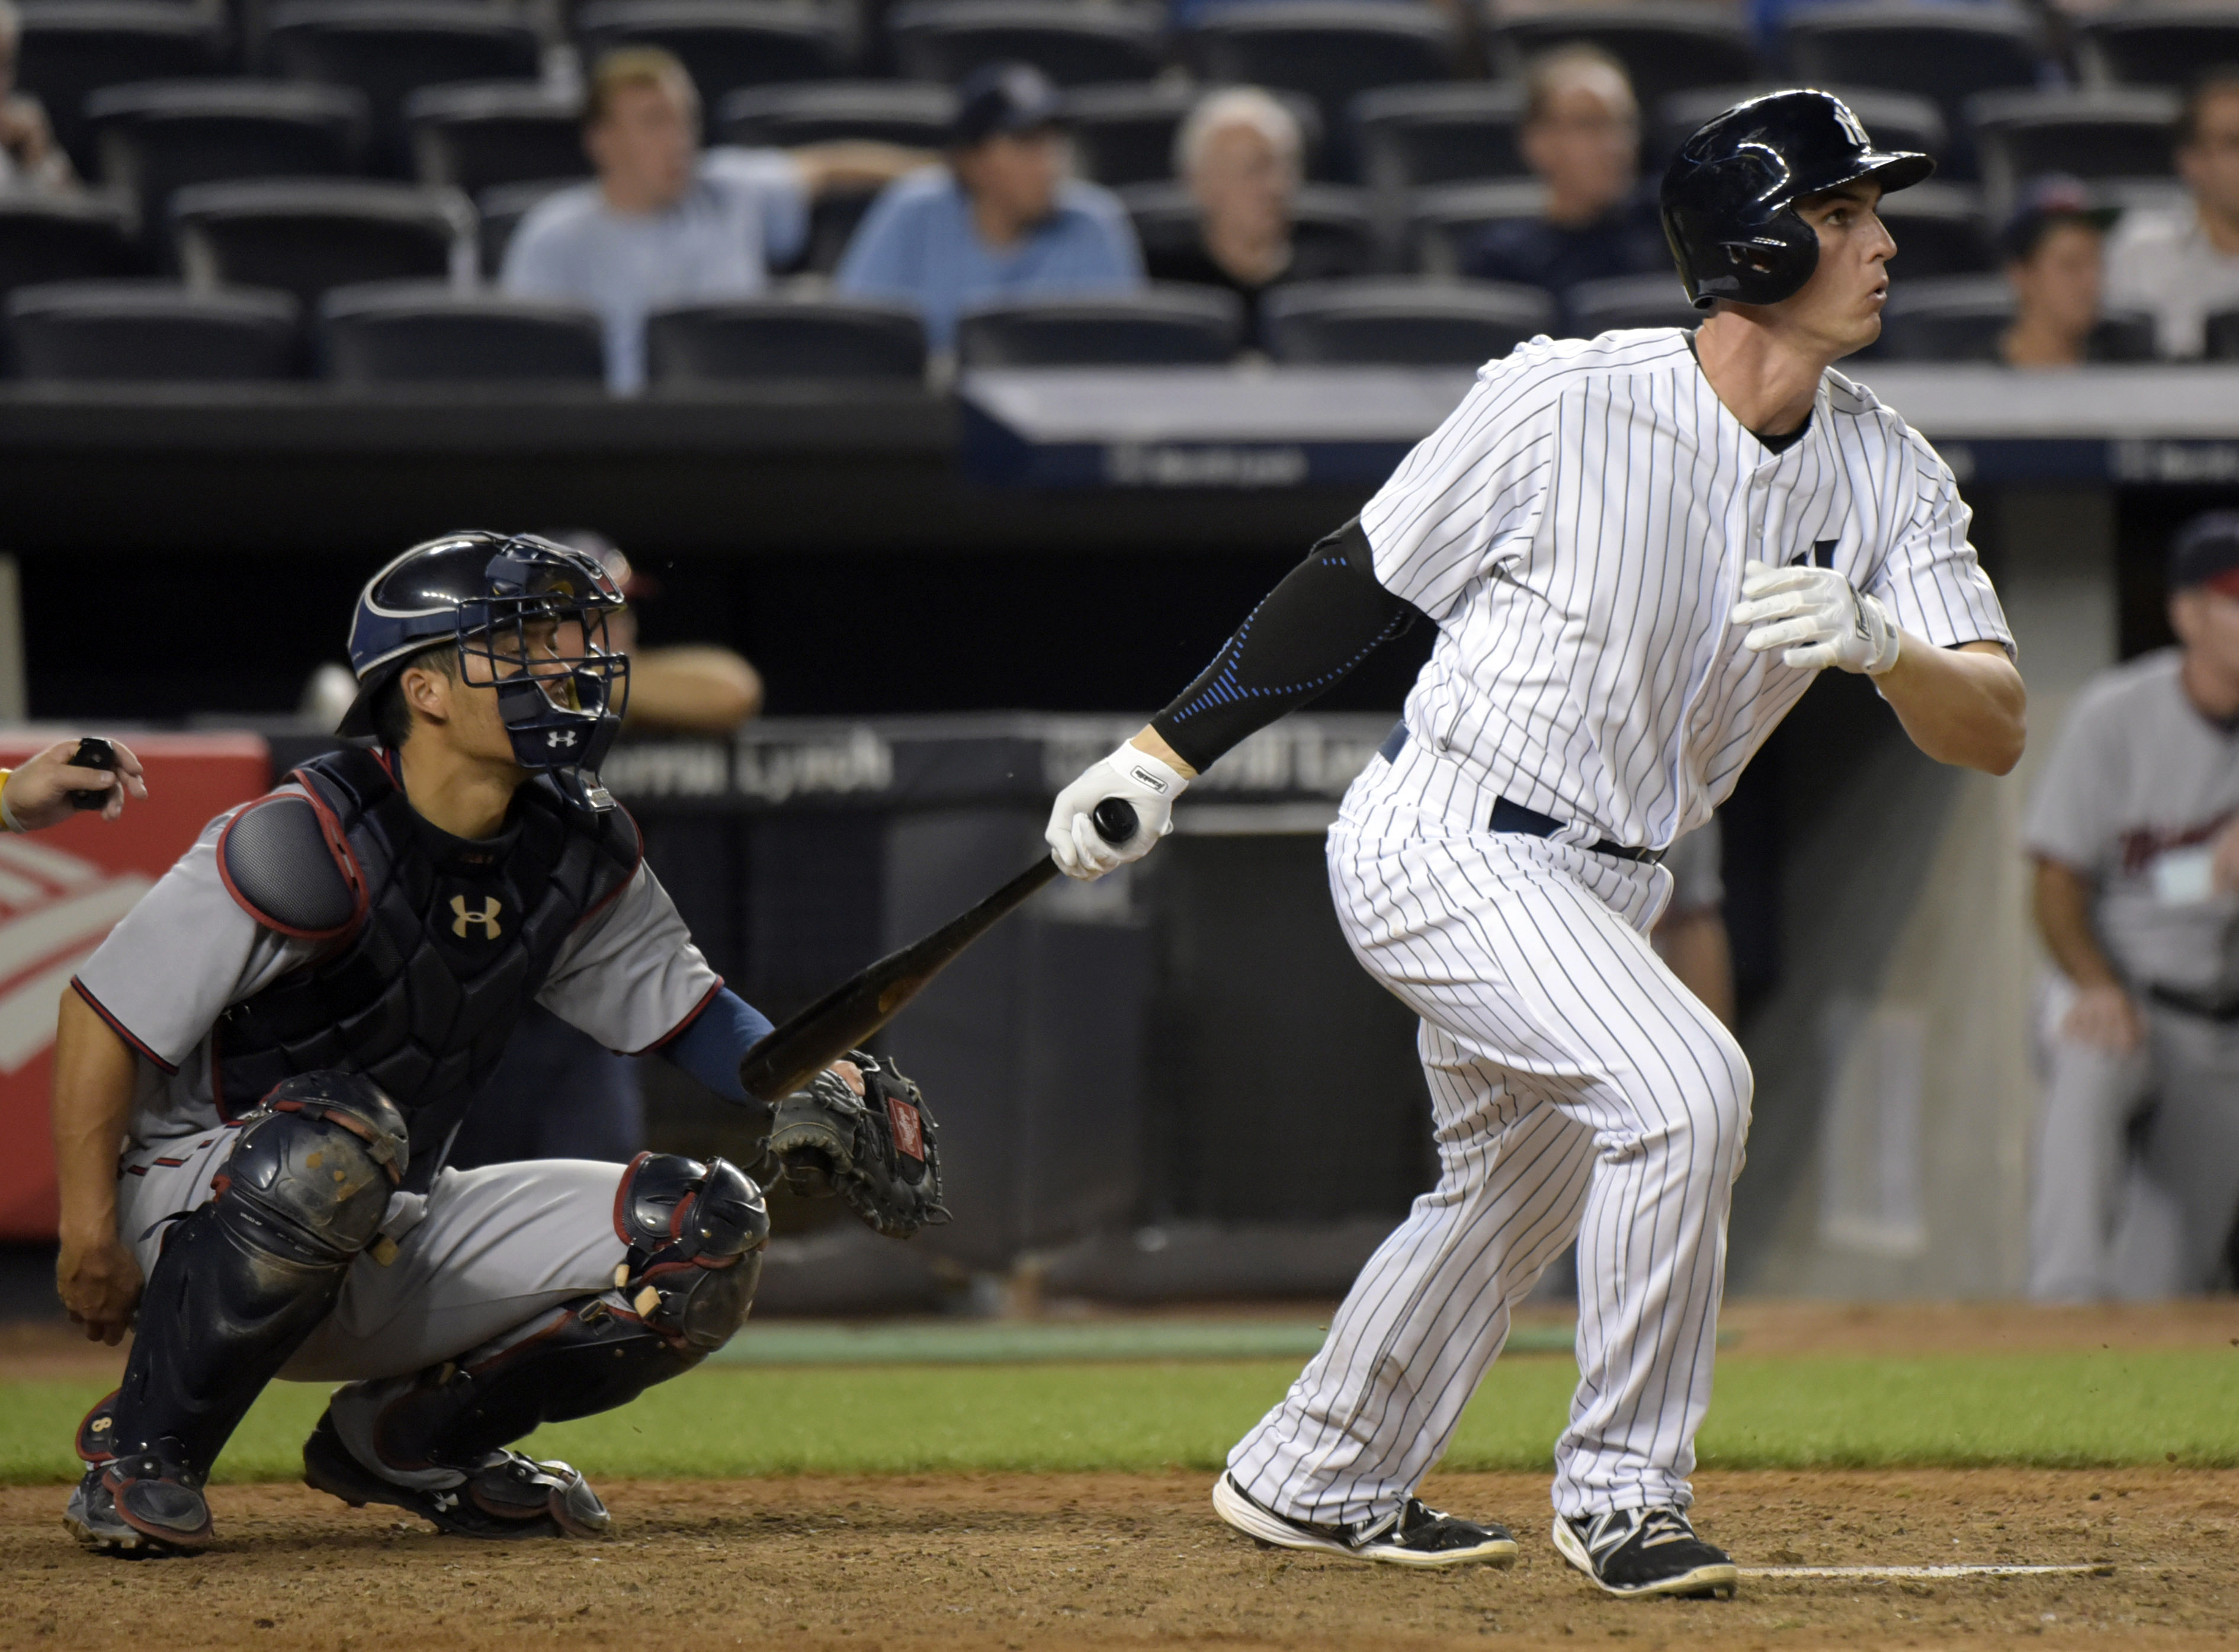 FILE - In this Aug. 17, 2015, file photo, New York Yankees' Greg Bird, right, hits a double as Minnesota Twins catcher Kurt Suzuki, left, looks on during the 10th inning of a baseball game in New York. Yankees first base prospect Bird will have right shou